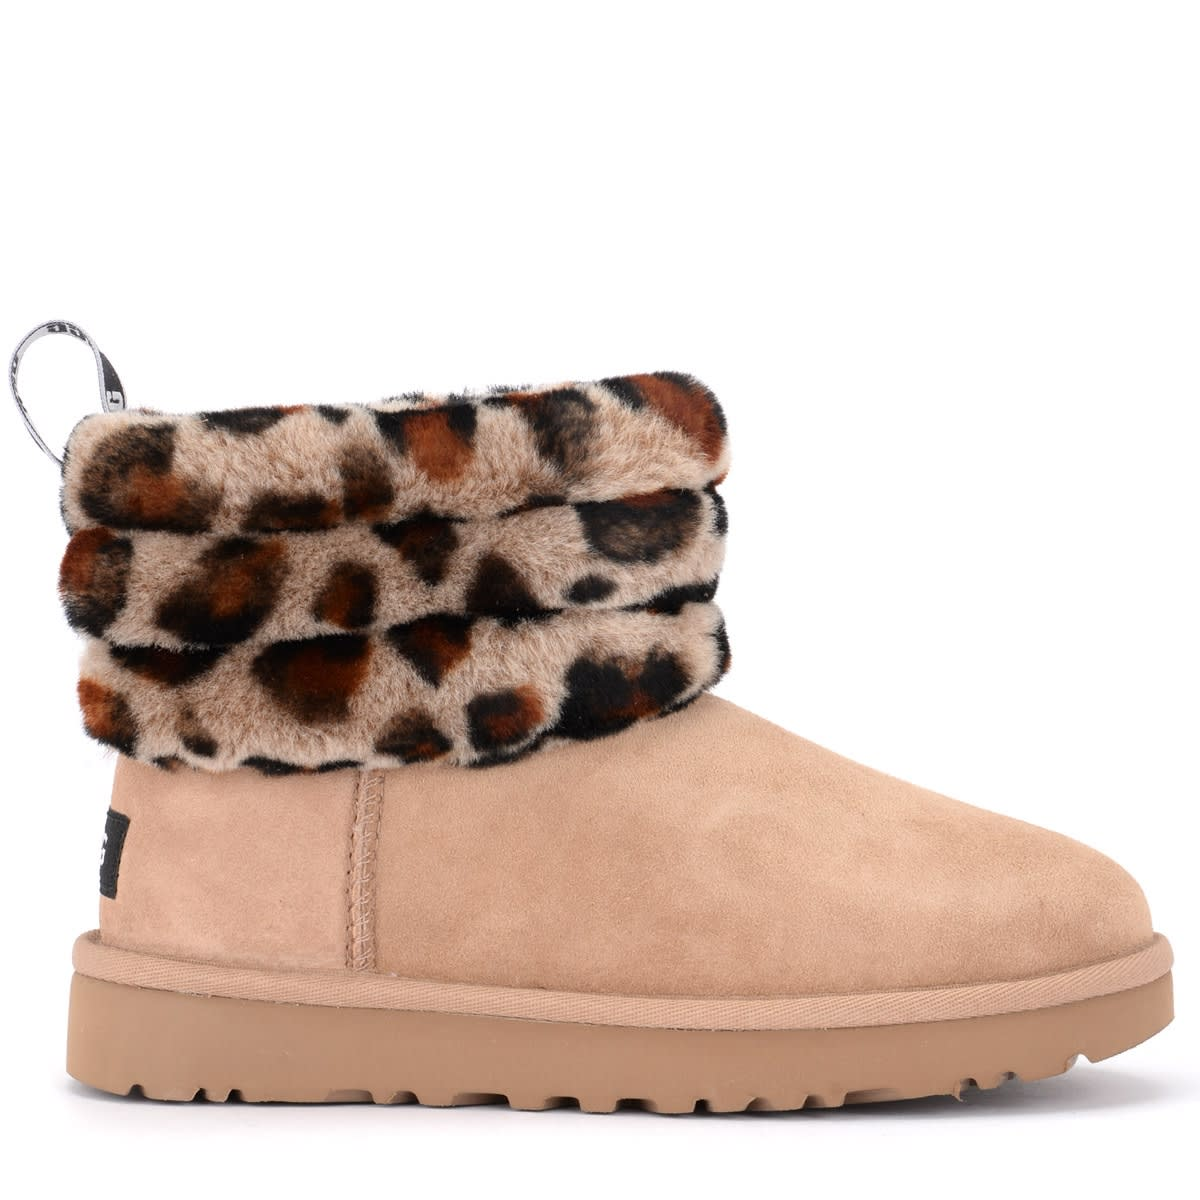 Ugg Fluff Mini Quilted Ankle Boot In Beige Sheepskin And Leopard Print Collar